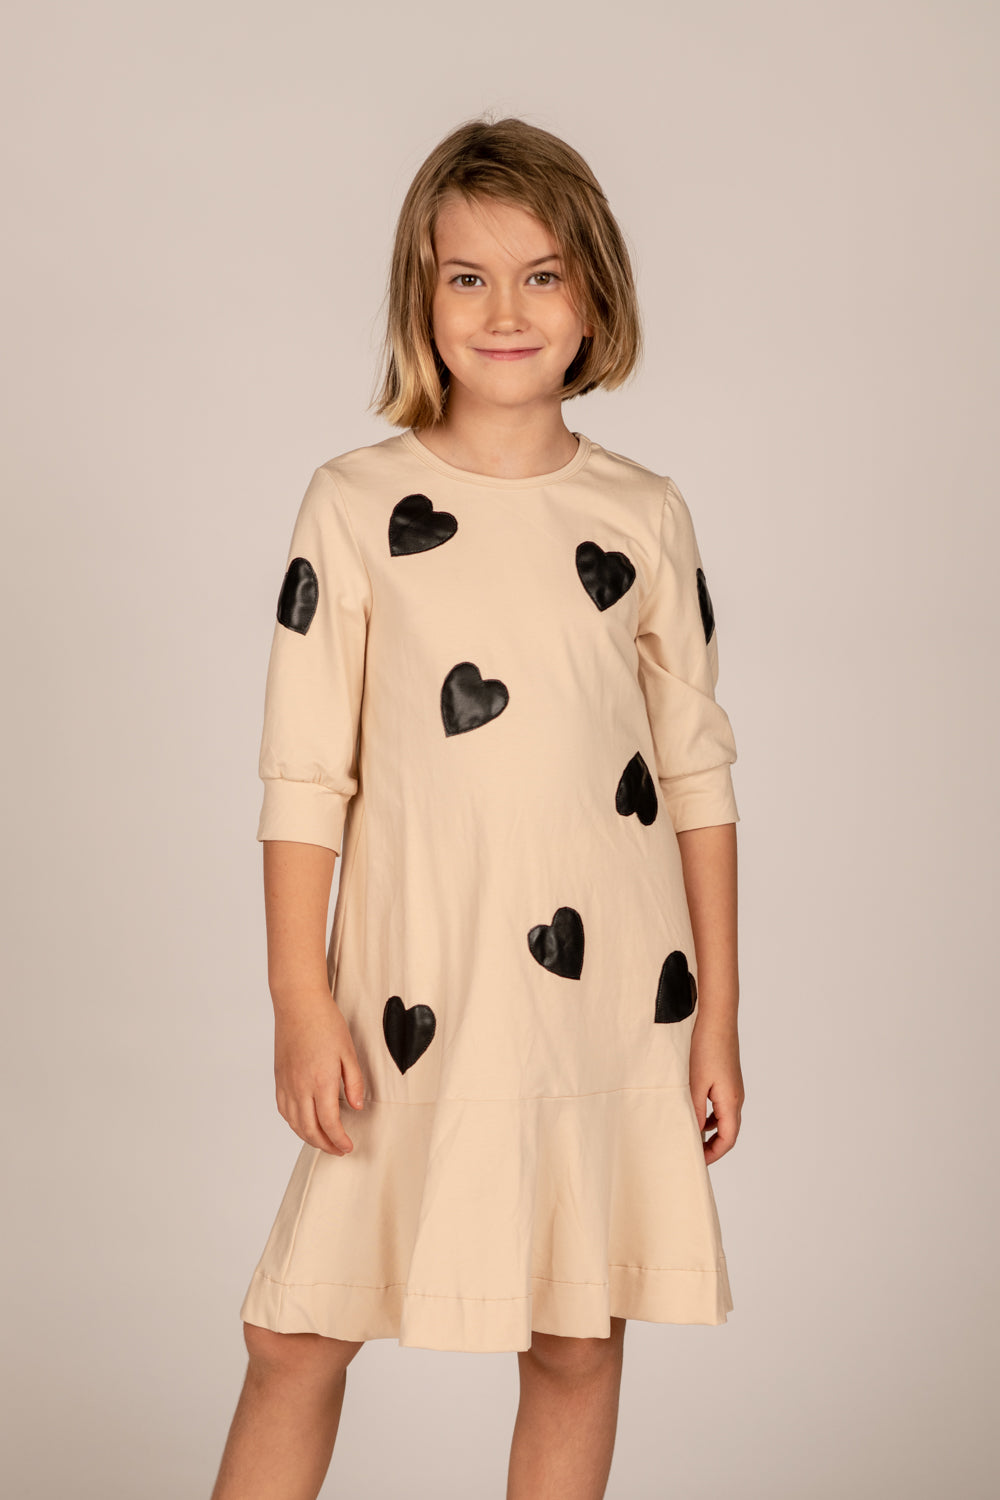 LU COTTON DRESS WITH BLACK LEATHER HEARTS